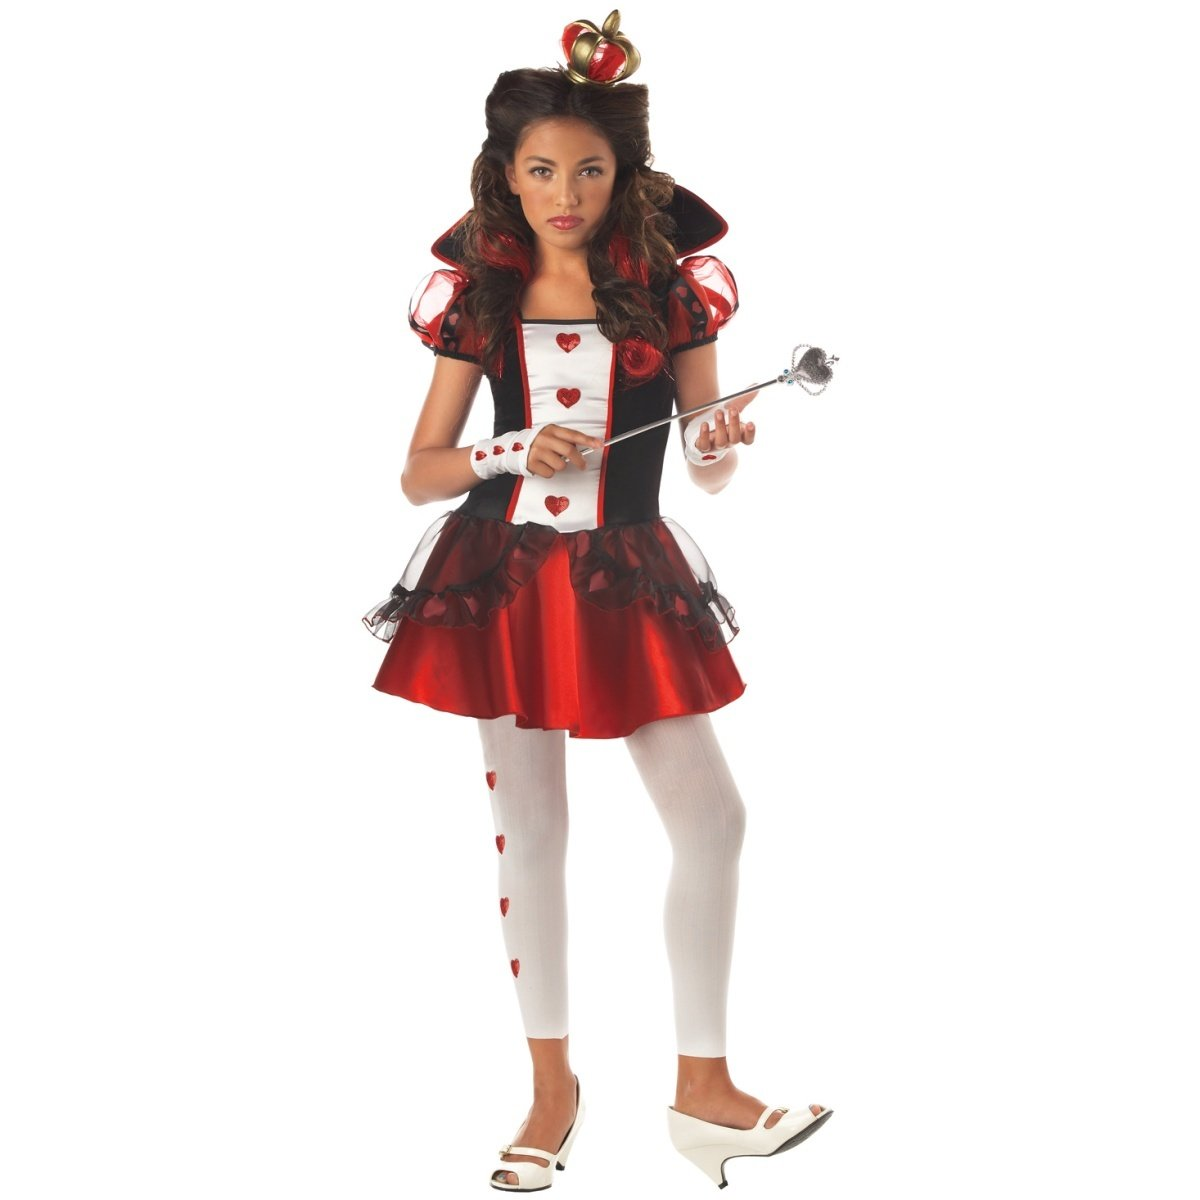 amazoncom queen of hearts costume large toys games